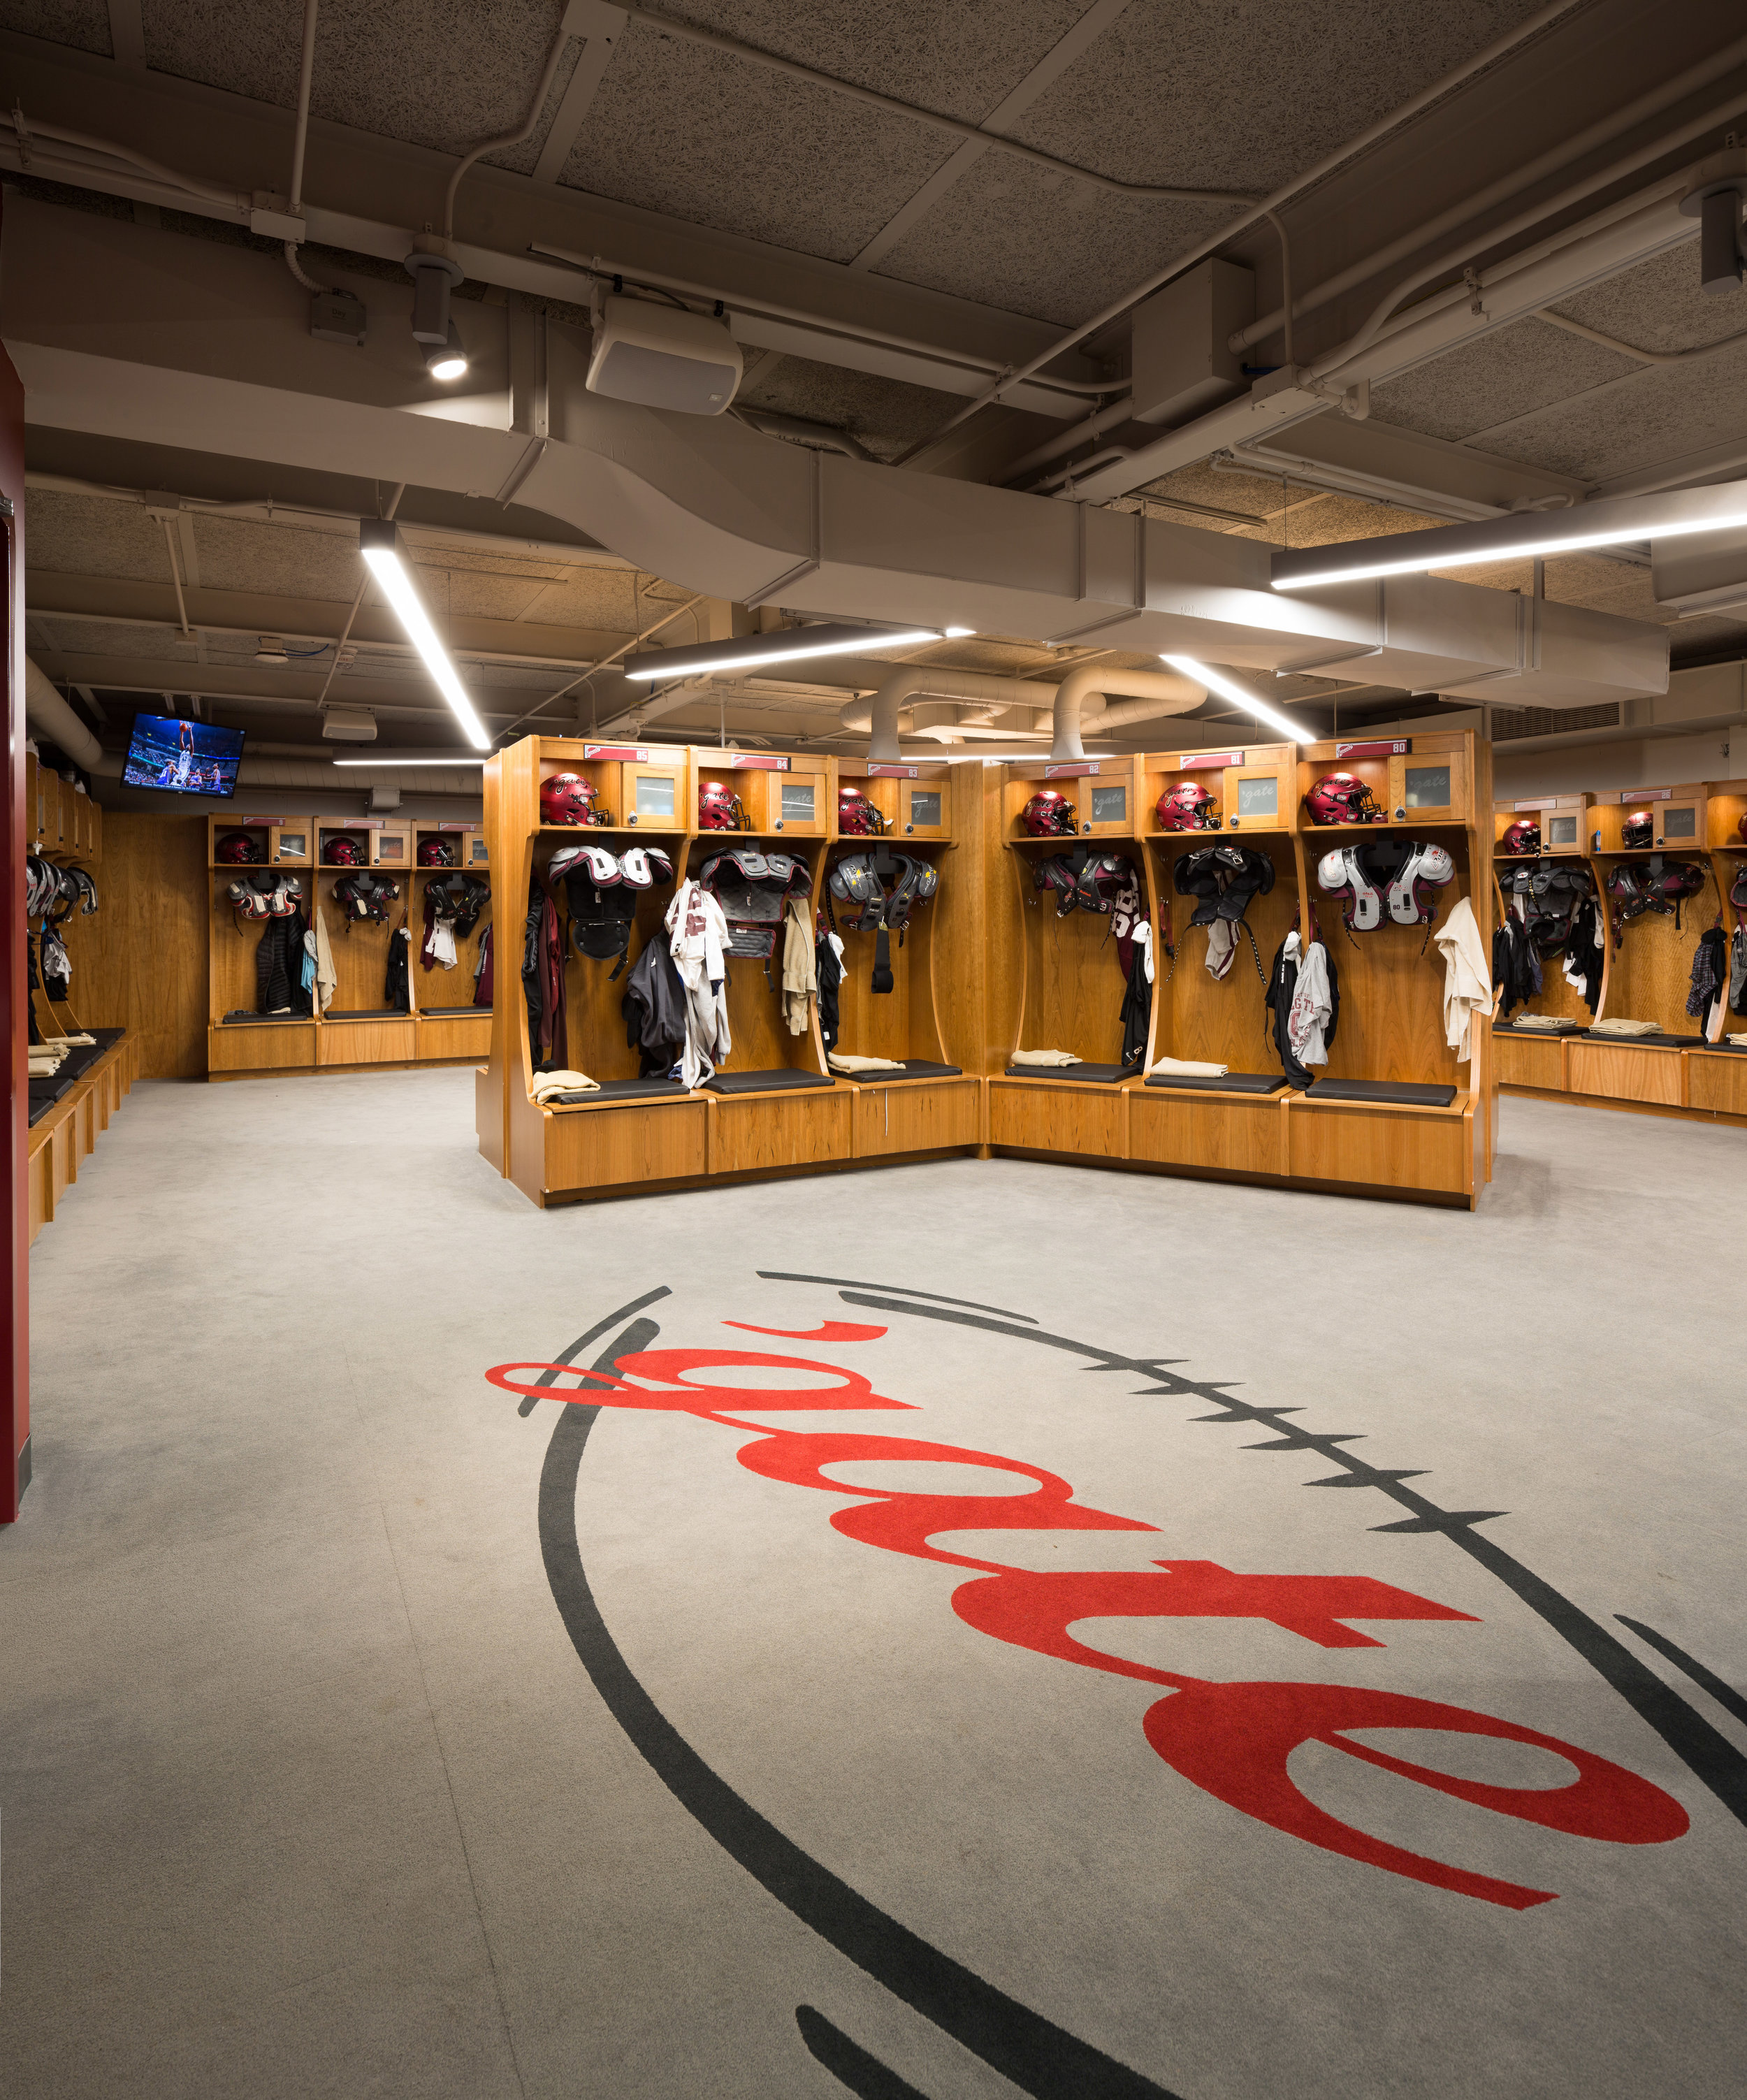 FOOTBALL LOCKER ROOM<strong>A renovation and large expansion that helps position Colgate as a premiere athletic institution.</strong>